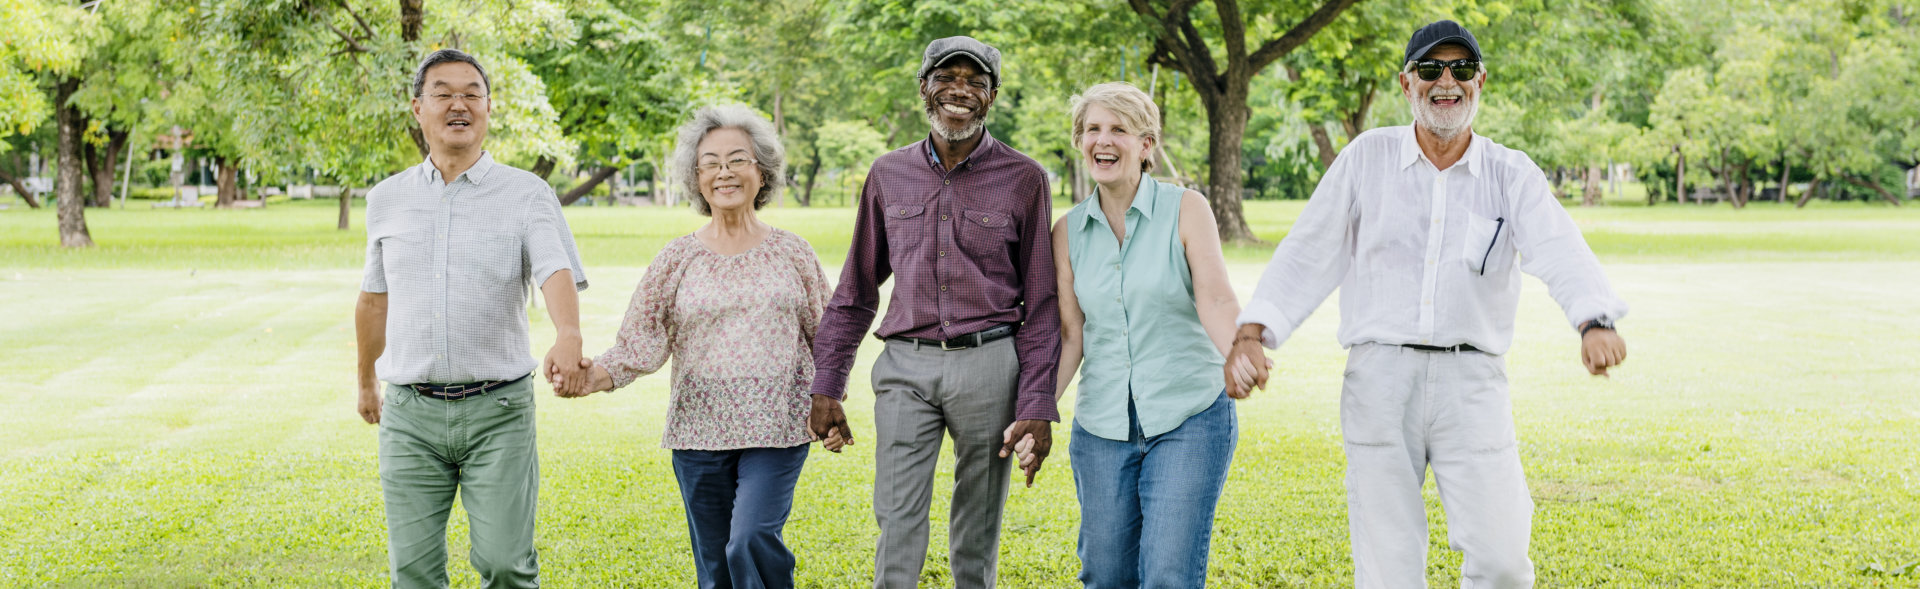 group of old people smiling